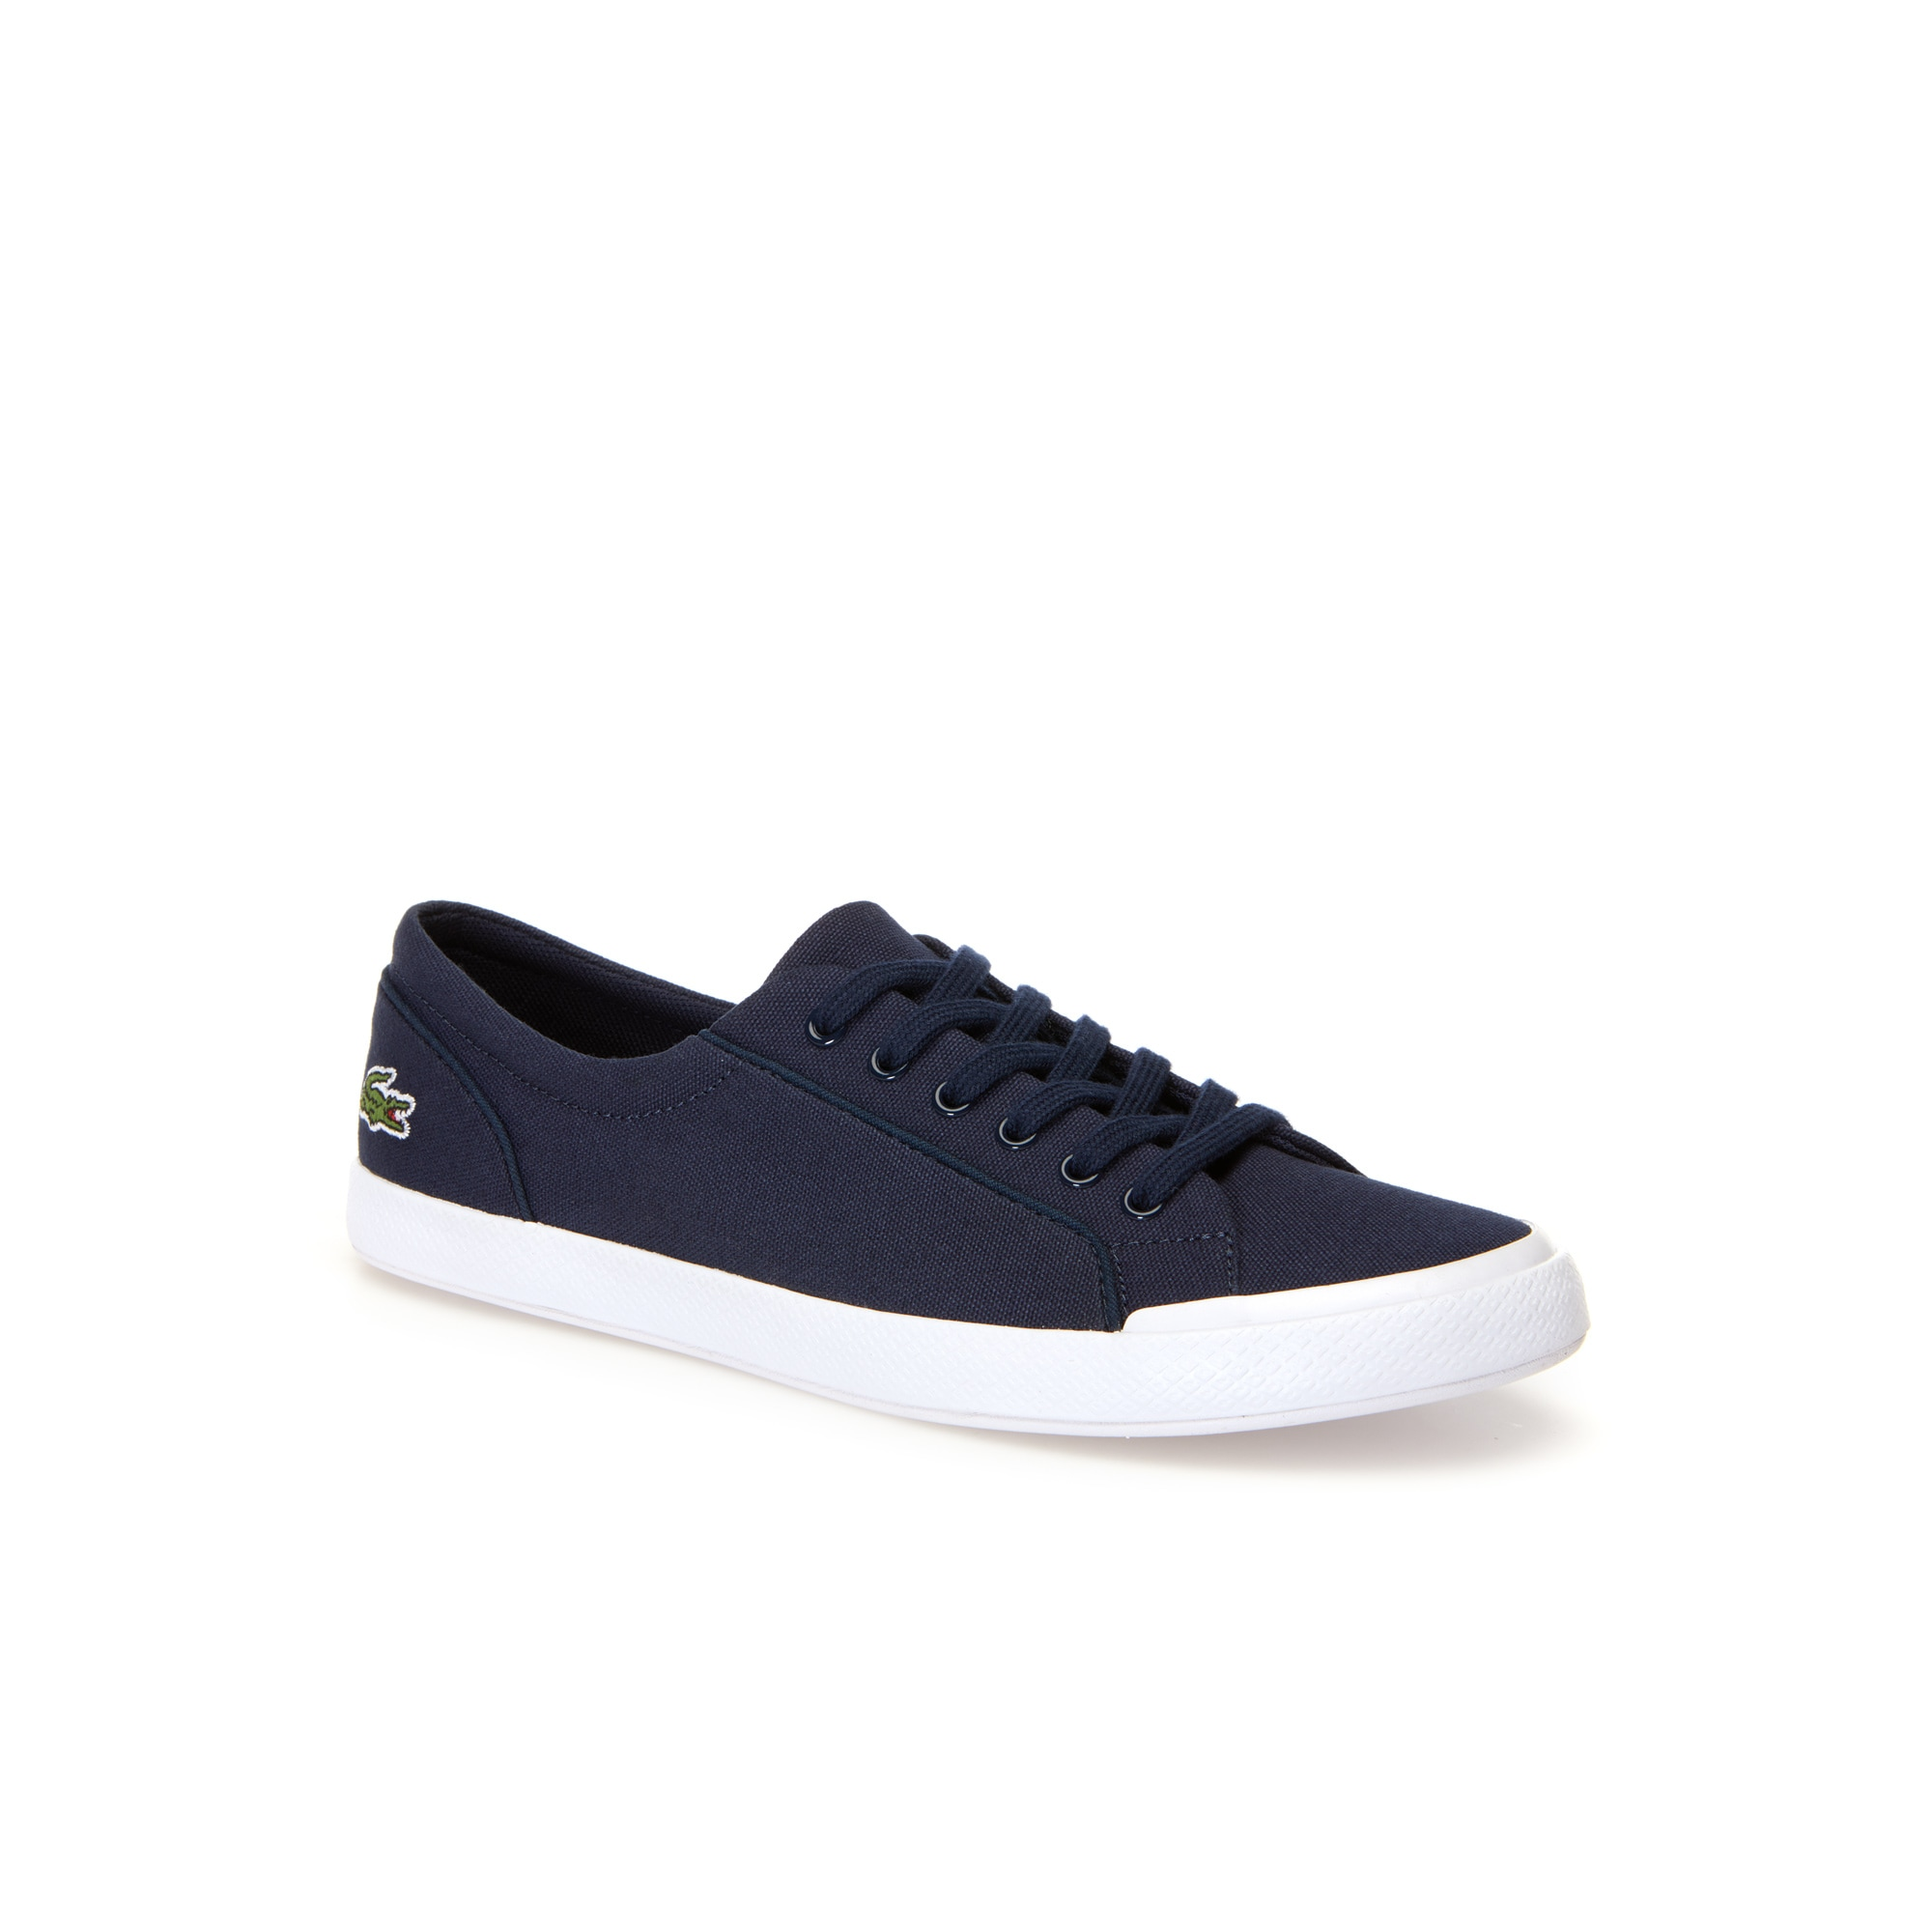 Low-Rise Damen-Sneakers LANCELLE aus Canvas